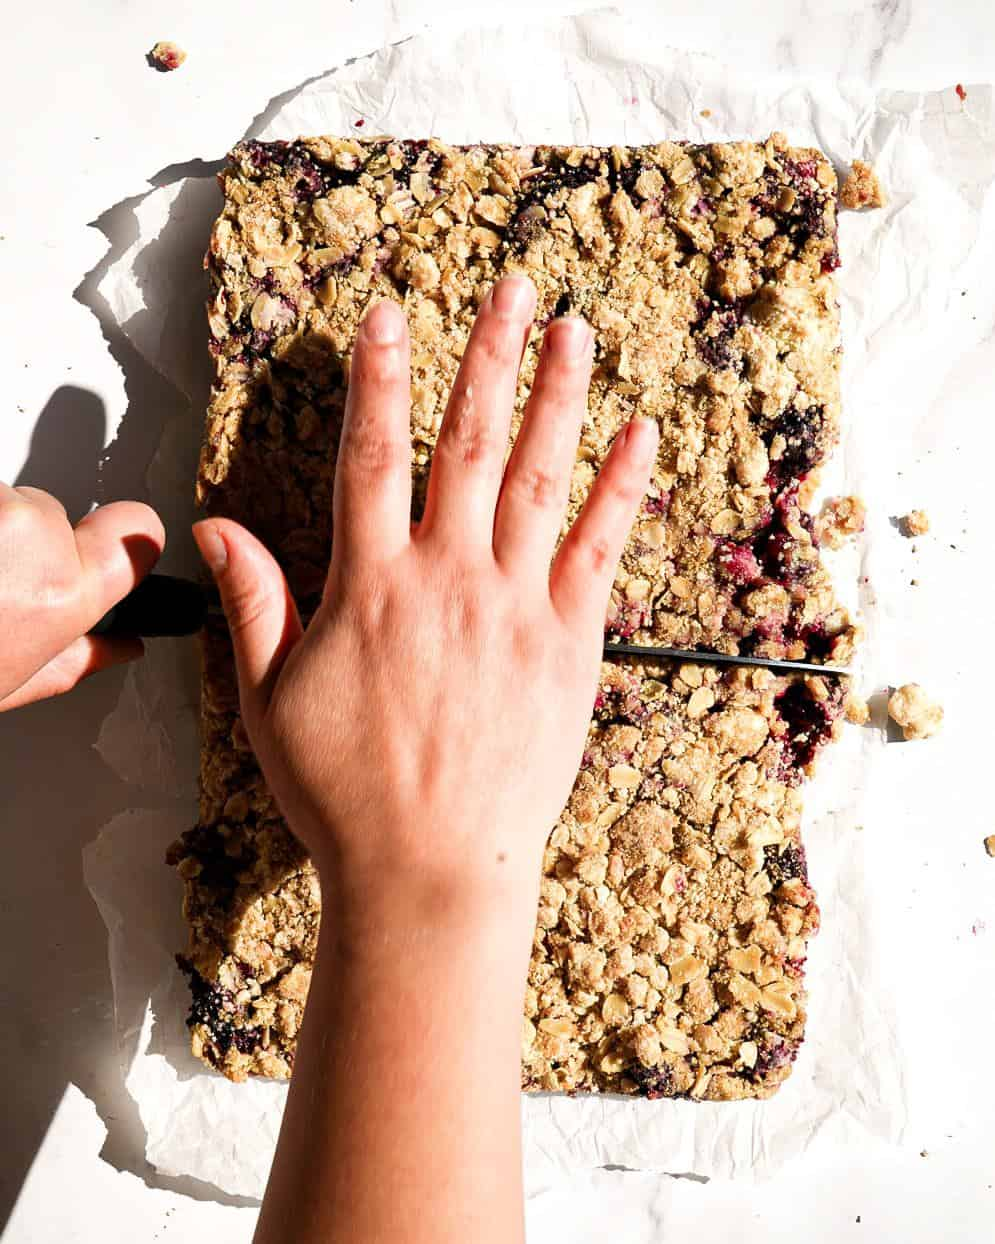 A hand holding a knife to cut blackberry crumb bars.